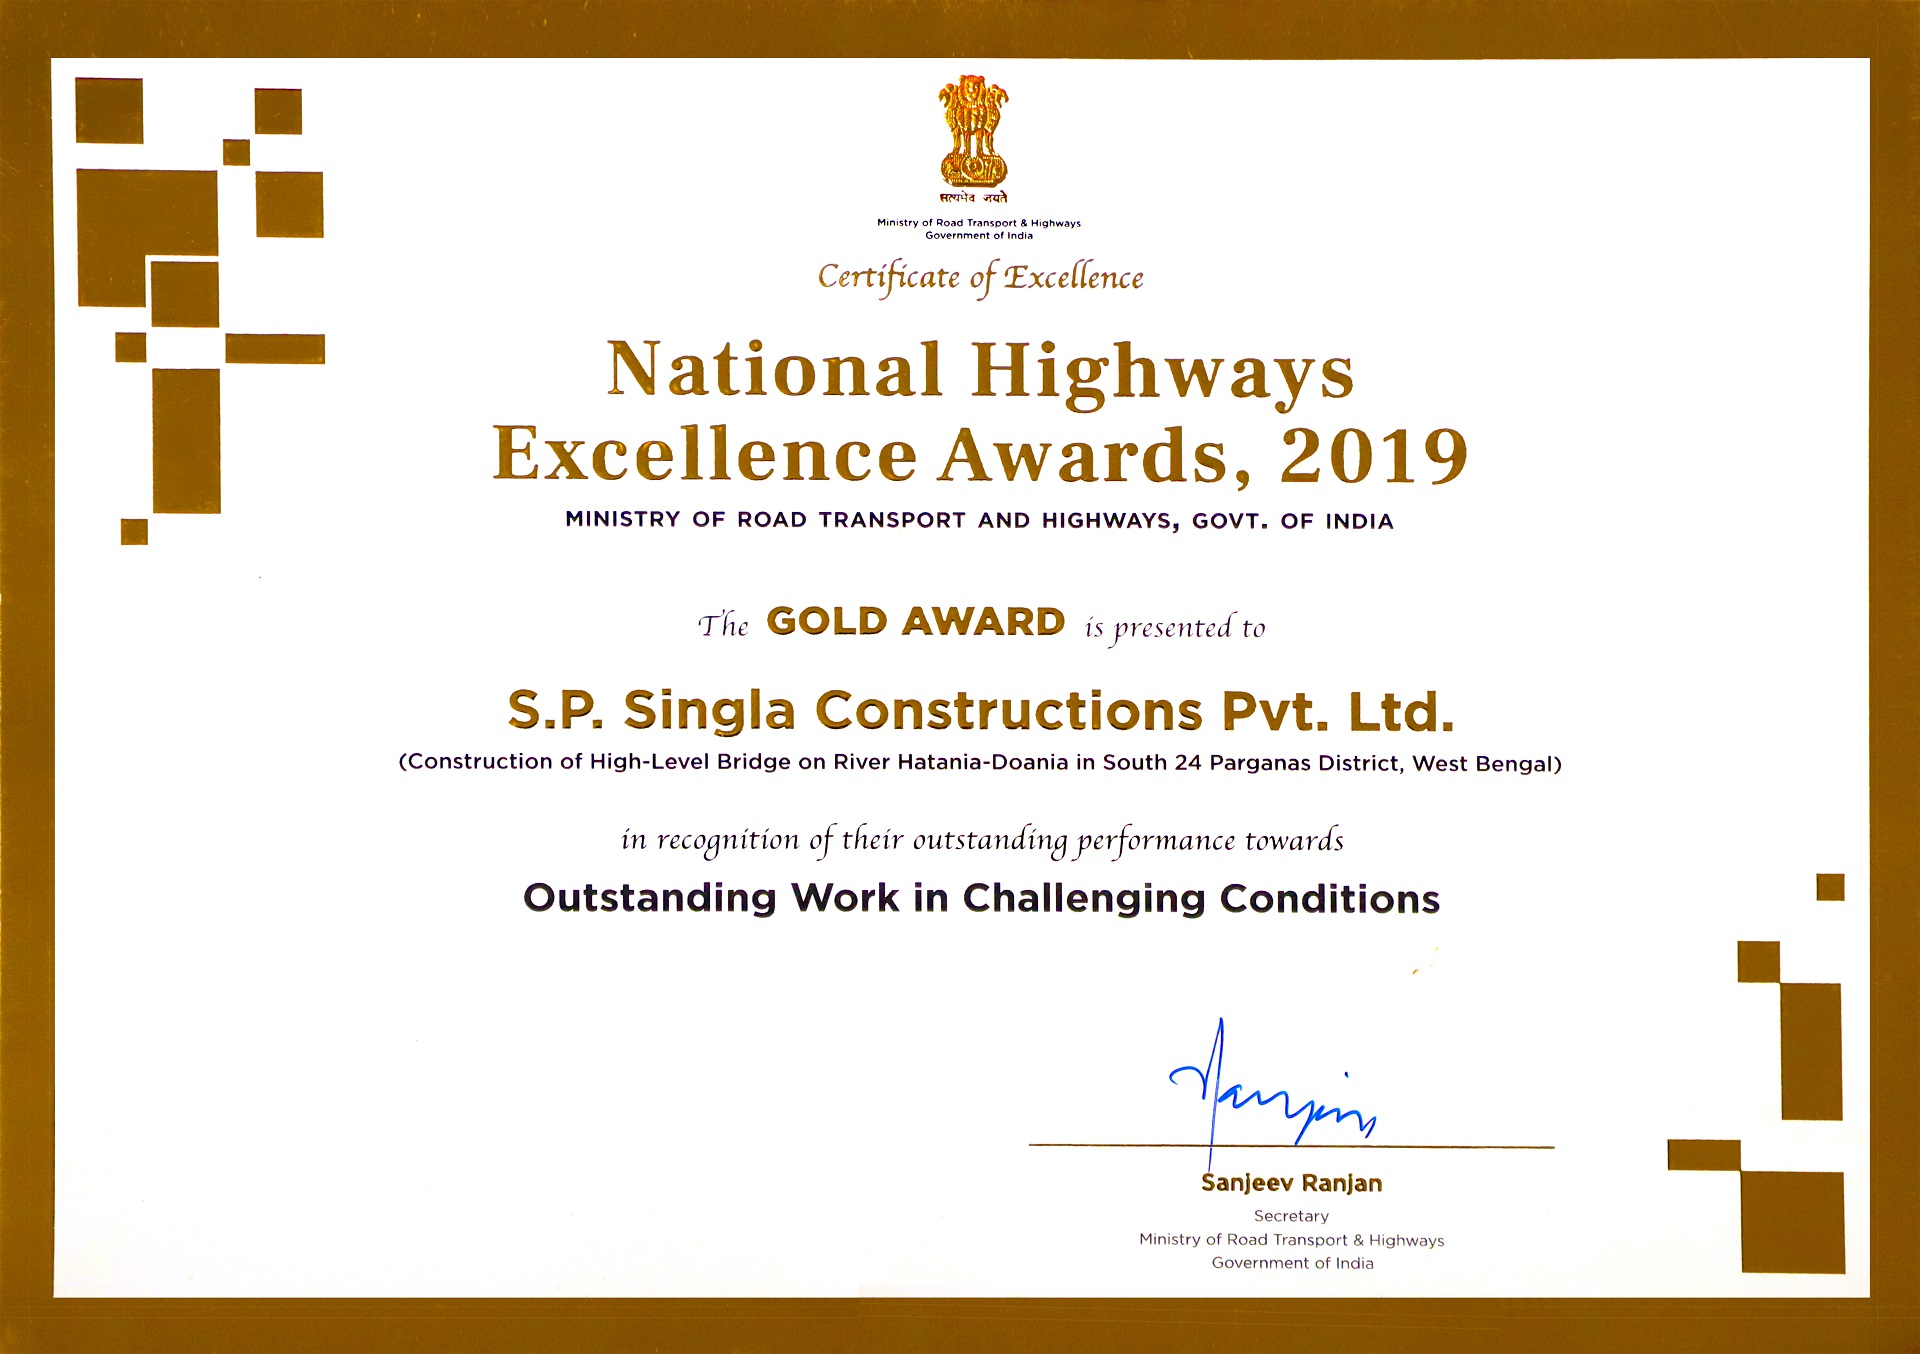 The company has been honoured with prestigious Gold Award in the category of outstanding work in challenging conditions for construction of High Level Bridge on RIver Hatania-Doania in the south pargana district, West Bengal at National Highways Awards for Excellence, 2019 by Ministry of Road Transport and Highways, Govt. of India. Shri S.P.Singla, CMD felicitated with this award by Shri Nitin Gadkari, Union Minister, Ministry of Road Transport & Highways, Shipping and Water Resources.